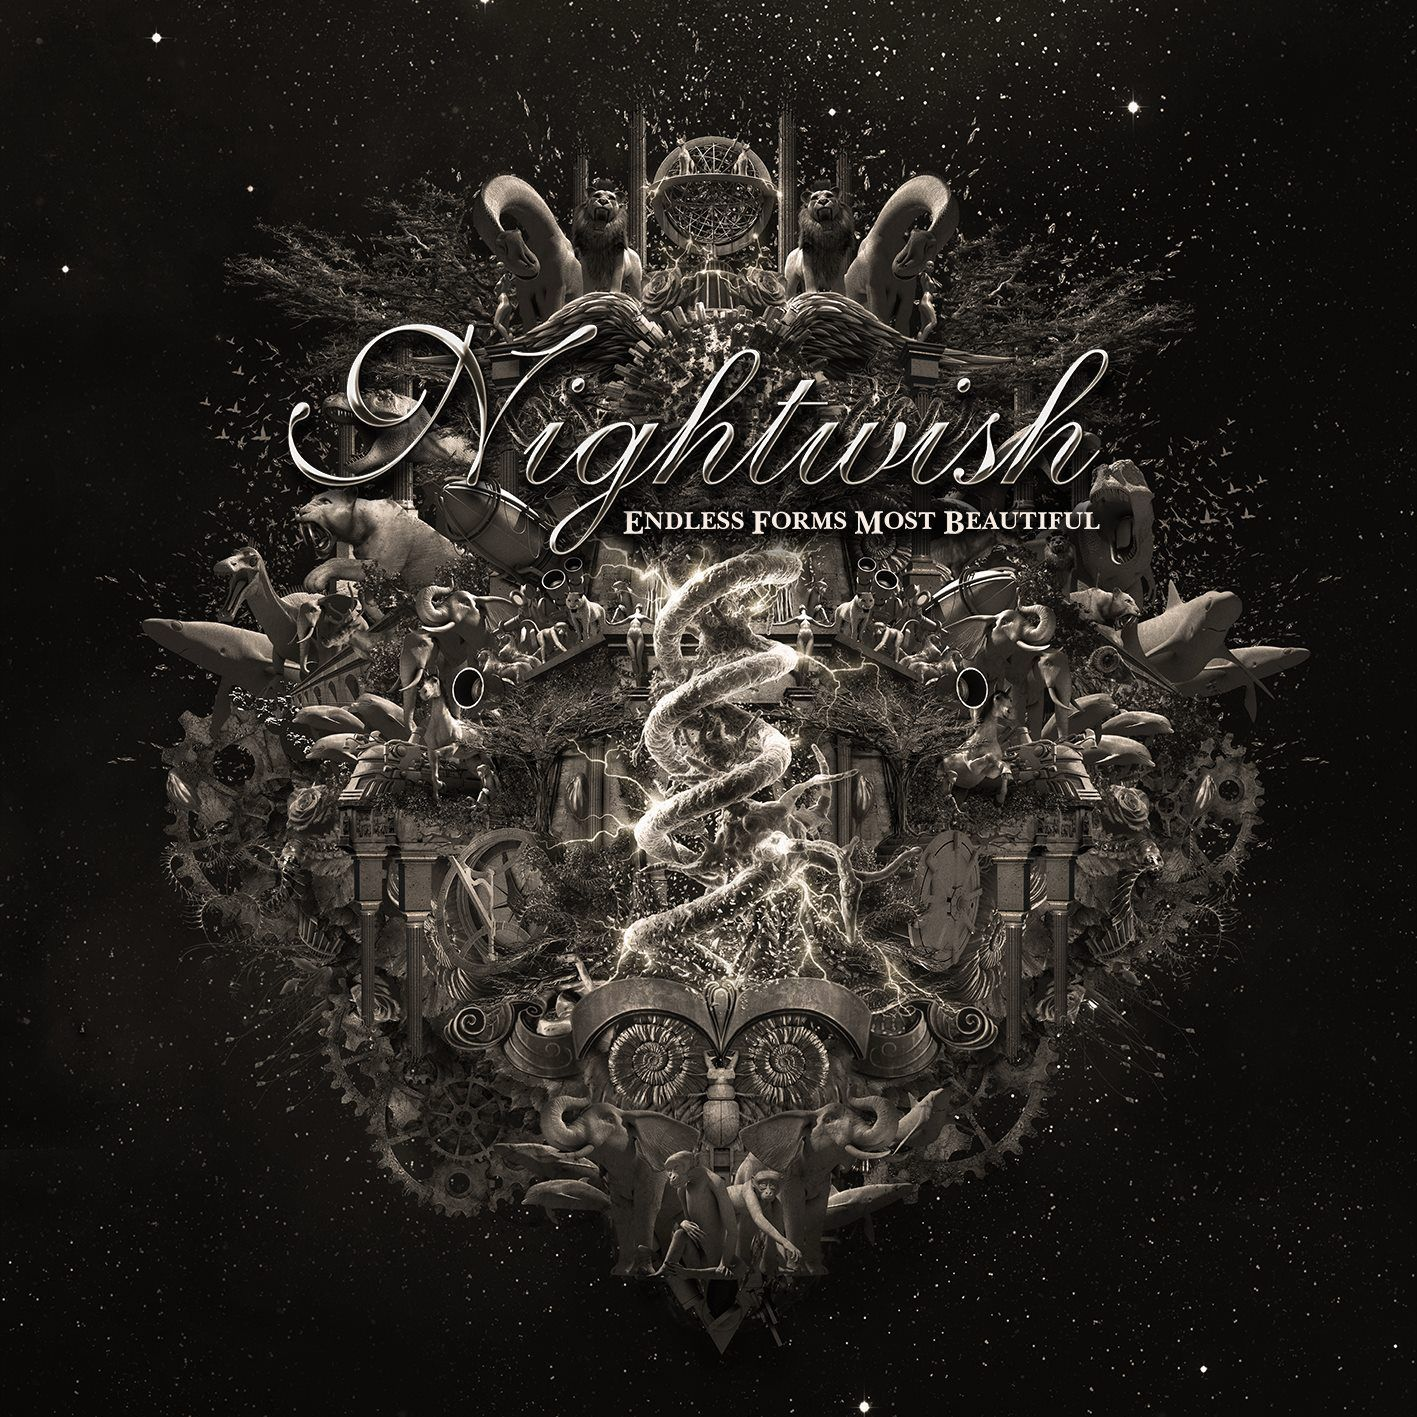 Nightwish - Endless Forms Most Beautiful album cover